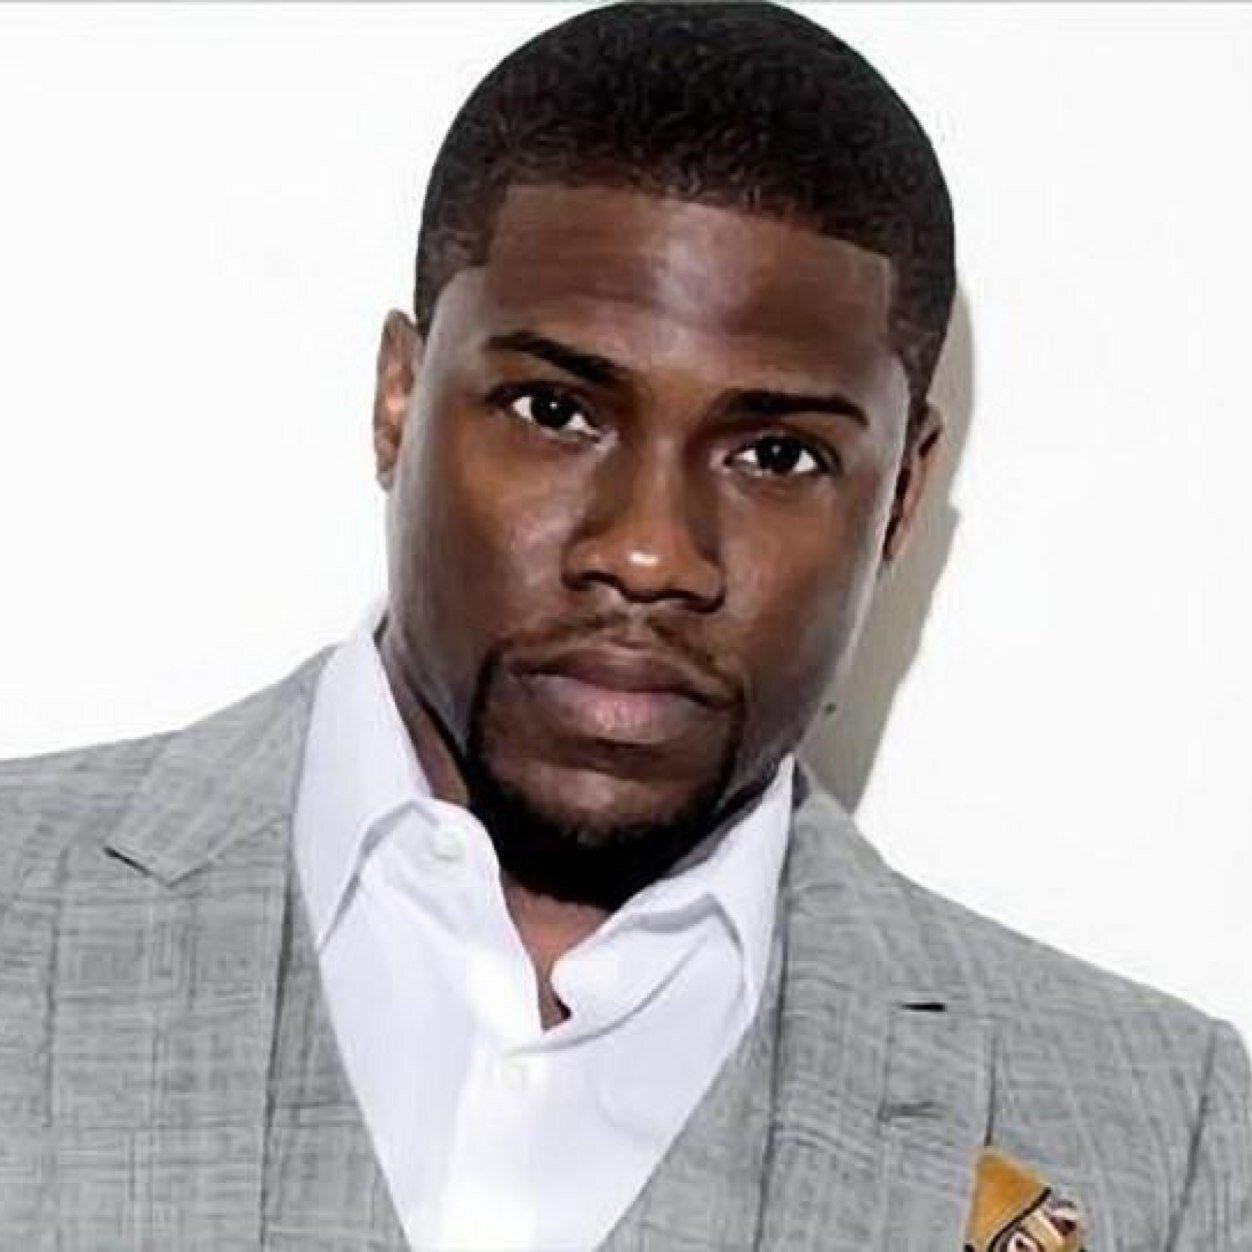 Kevin Hart Hospitalized After Suffering Major Back Injuries In Car